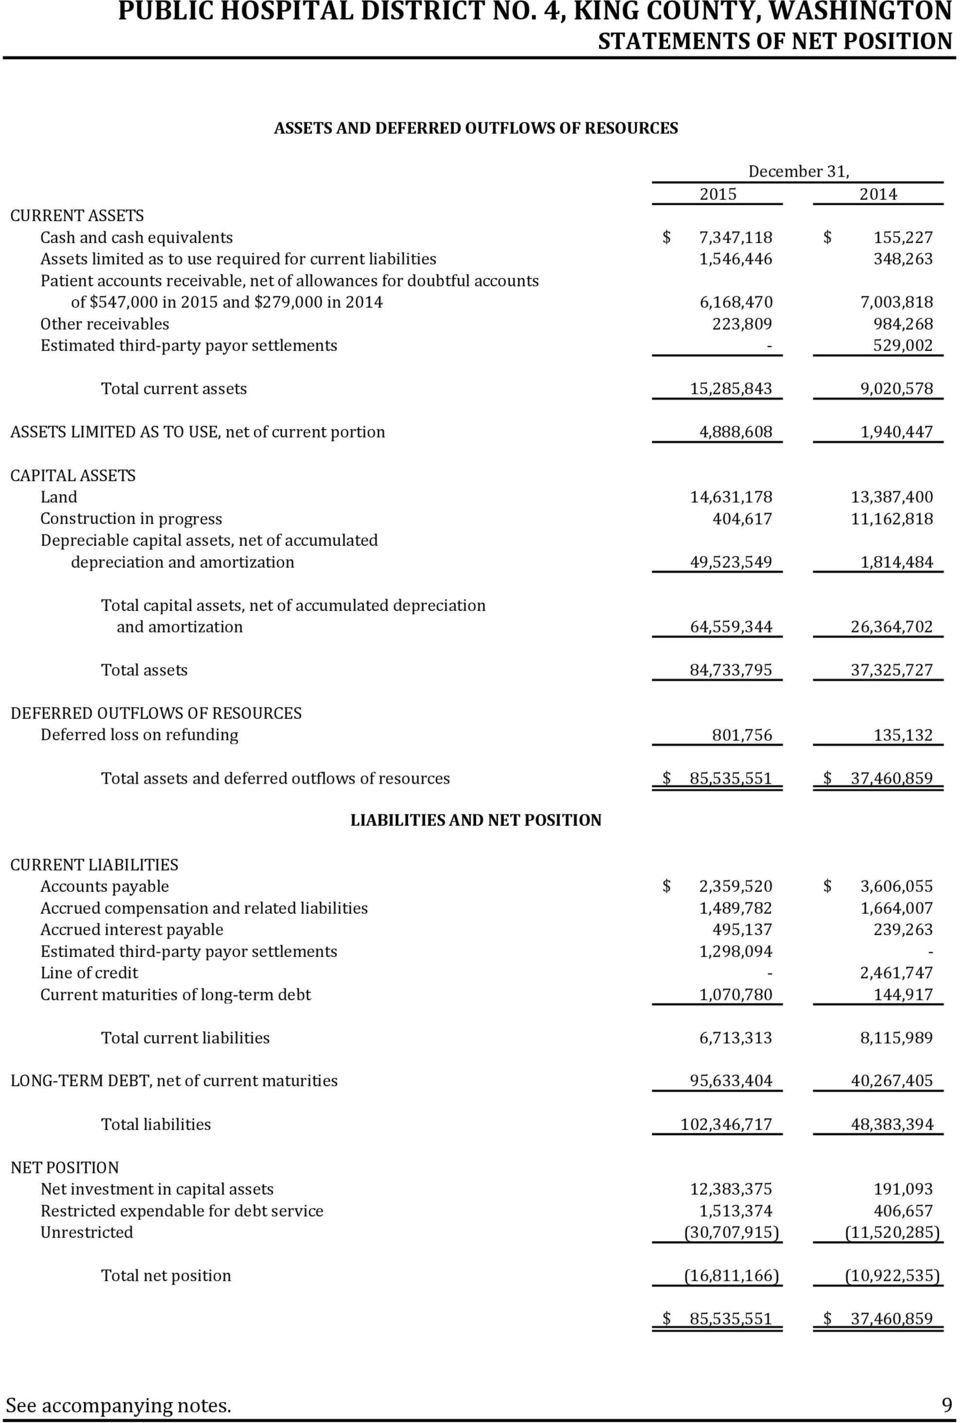 984,268 Estimated third party payor settlements 529,002 Total current assets 15,285,843 9,020,578 ASSETS LIMITED AS TO USE, net of current portion 4,888,608 1,940,447 CAPITAL ASSETS Land 14,631,178